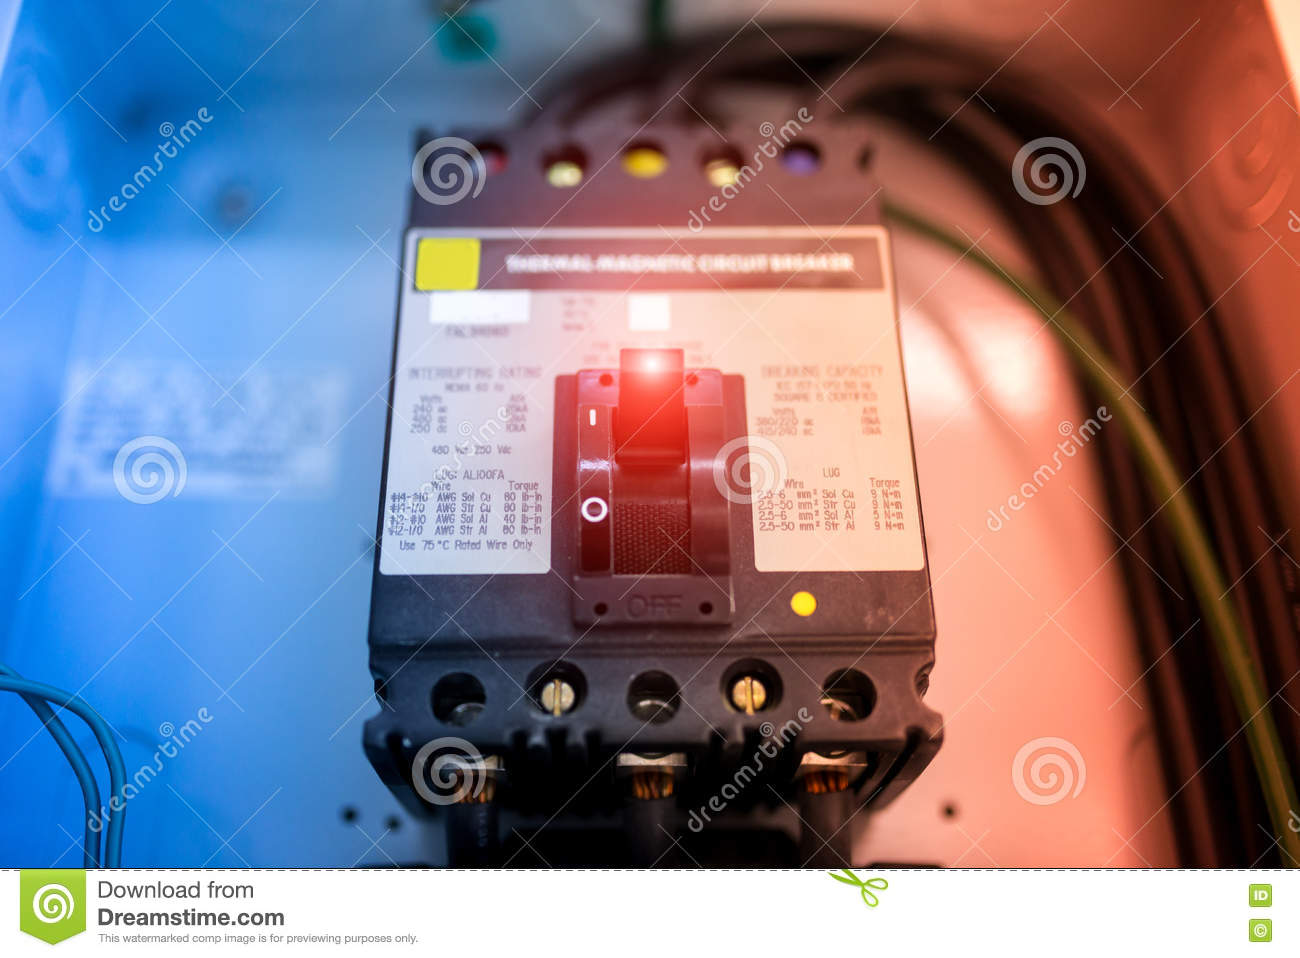 electric outdoor fuse box in soft light stock image image of fuse rh dreamstime com small outdoor fuse box outdoor electrical fuse box